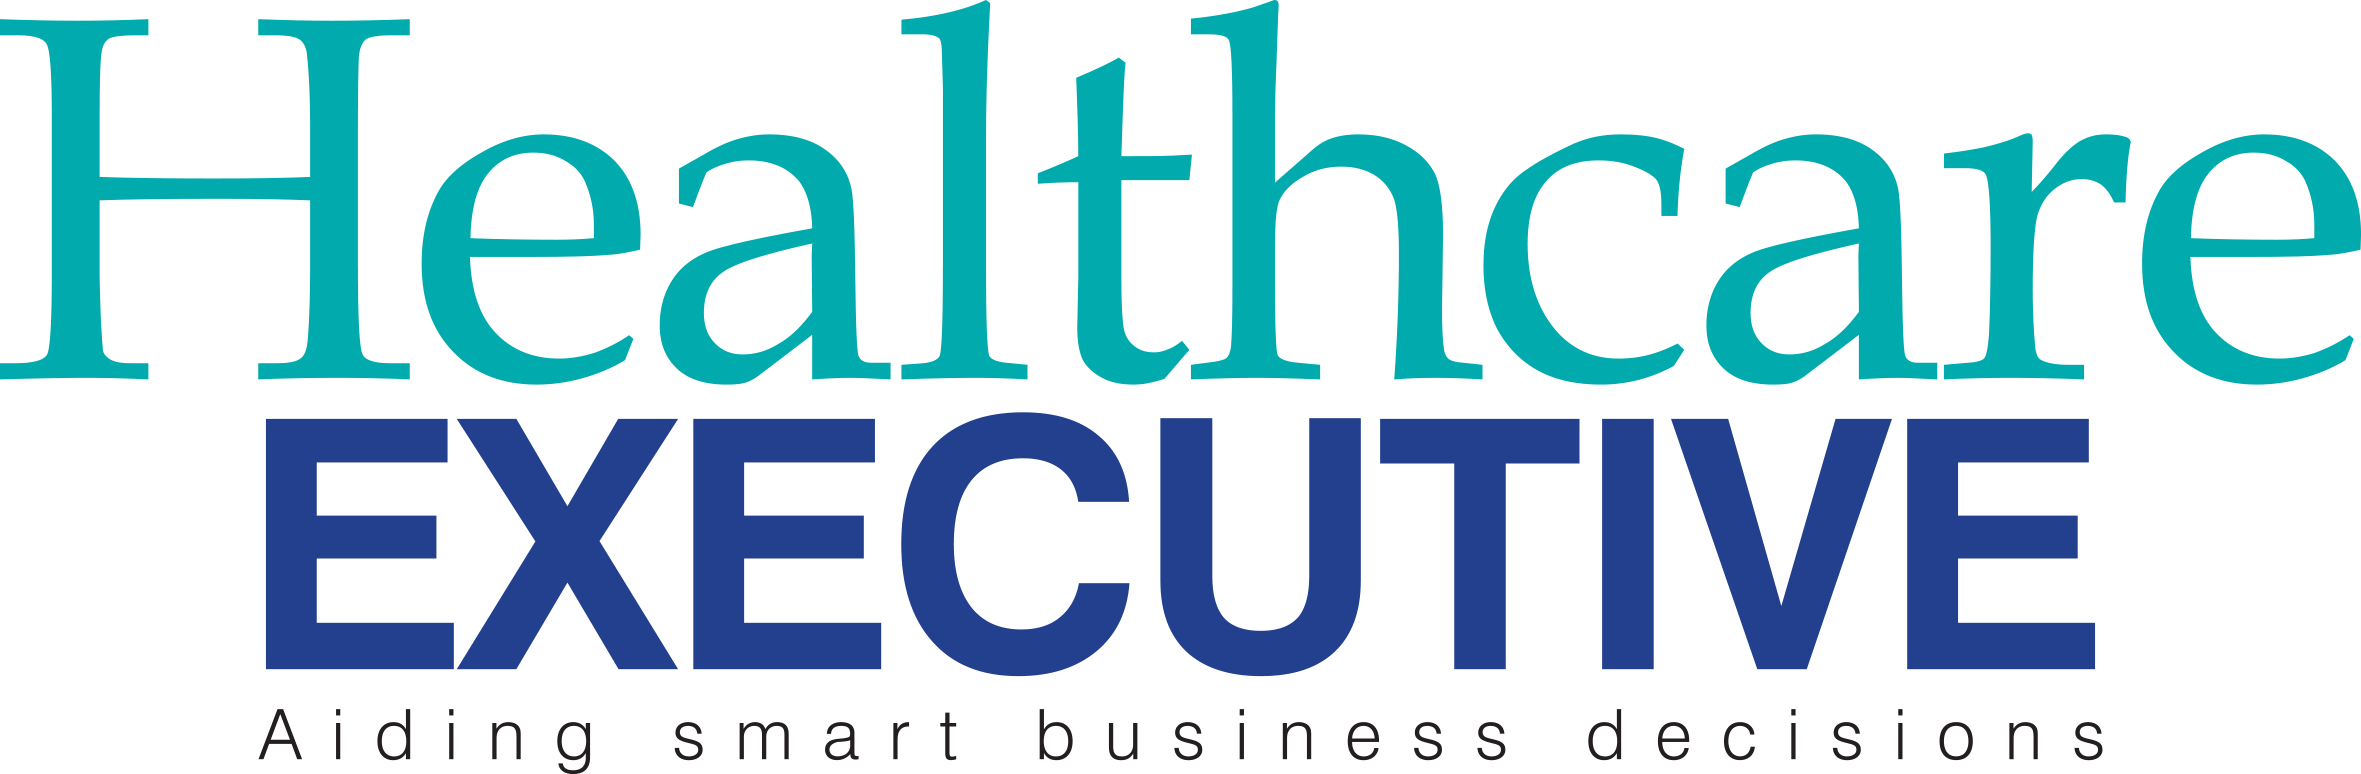 Healthcare Executive logo-Media partner for InnoHEALTH 2018